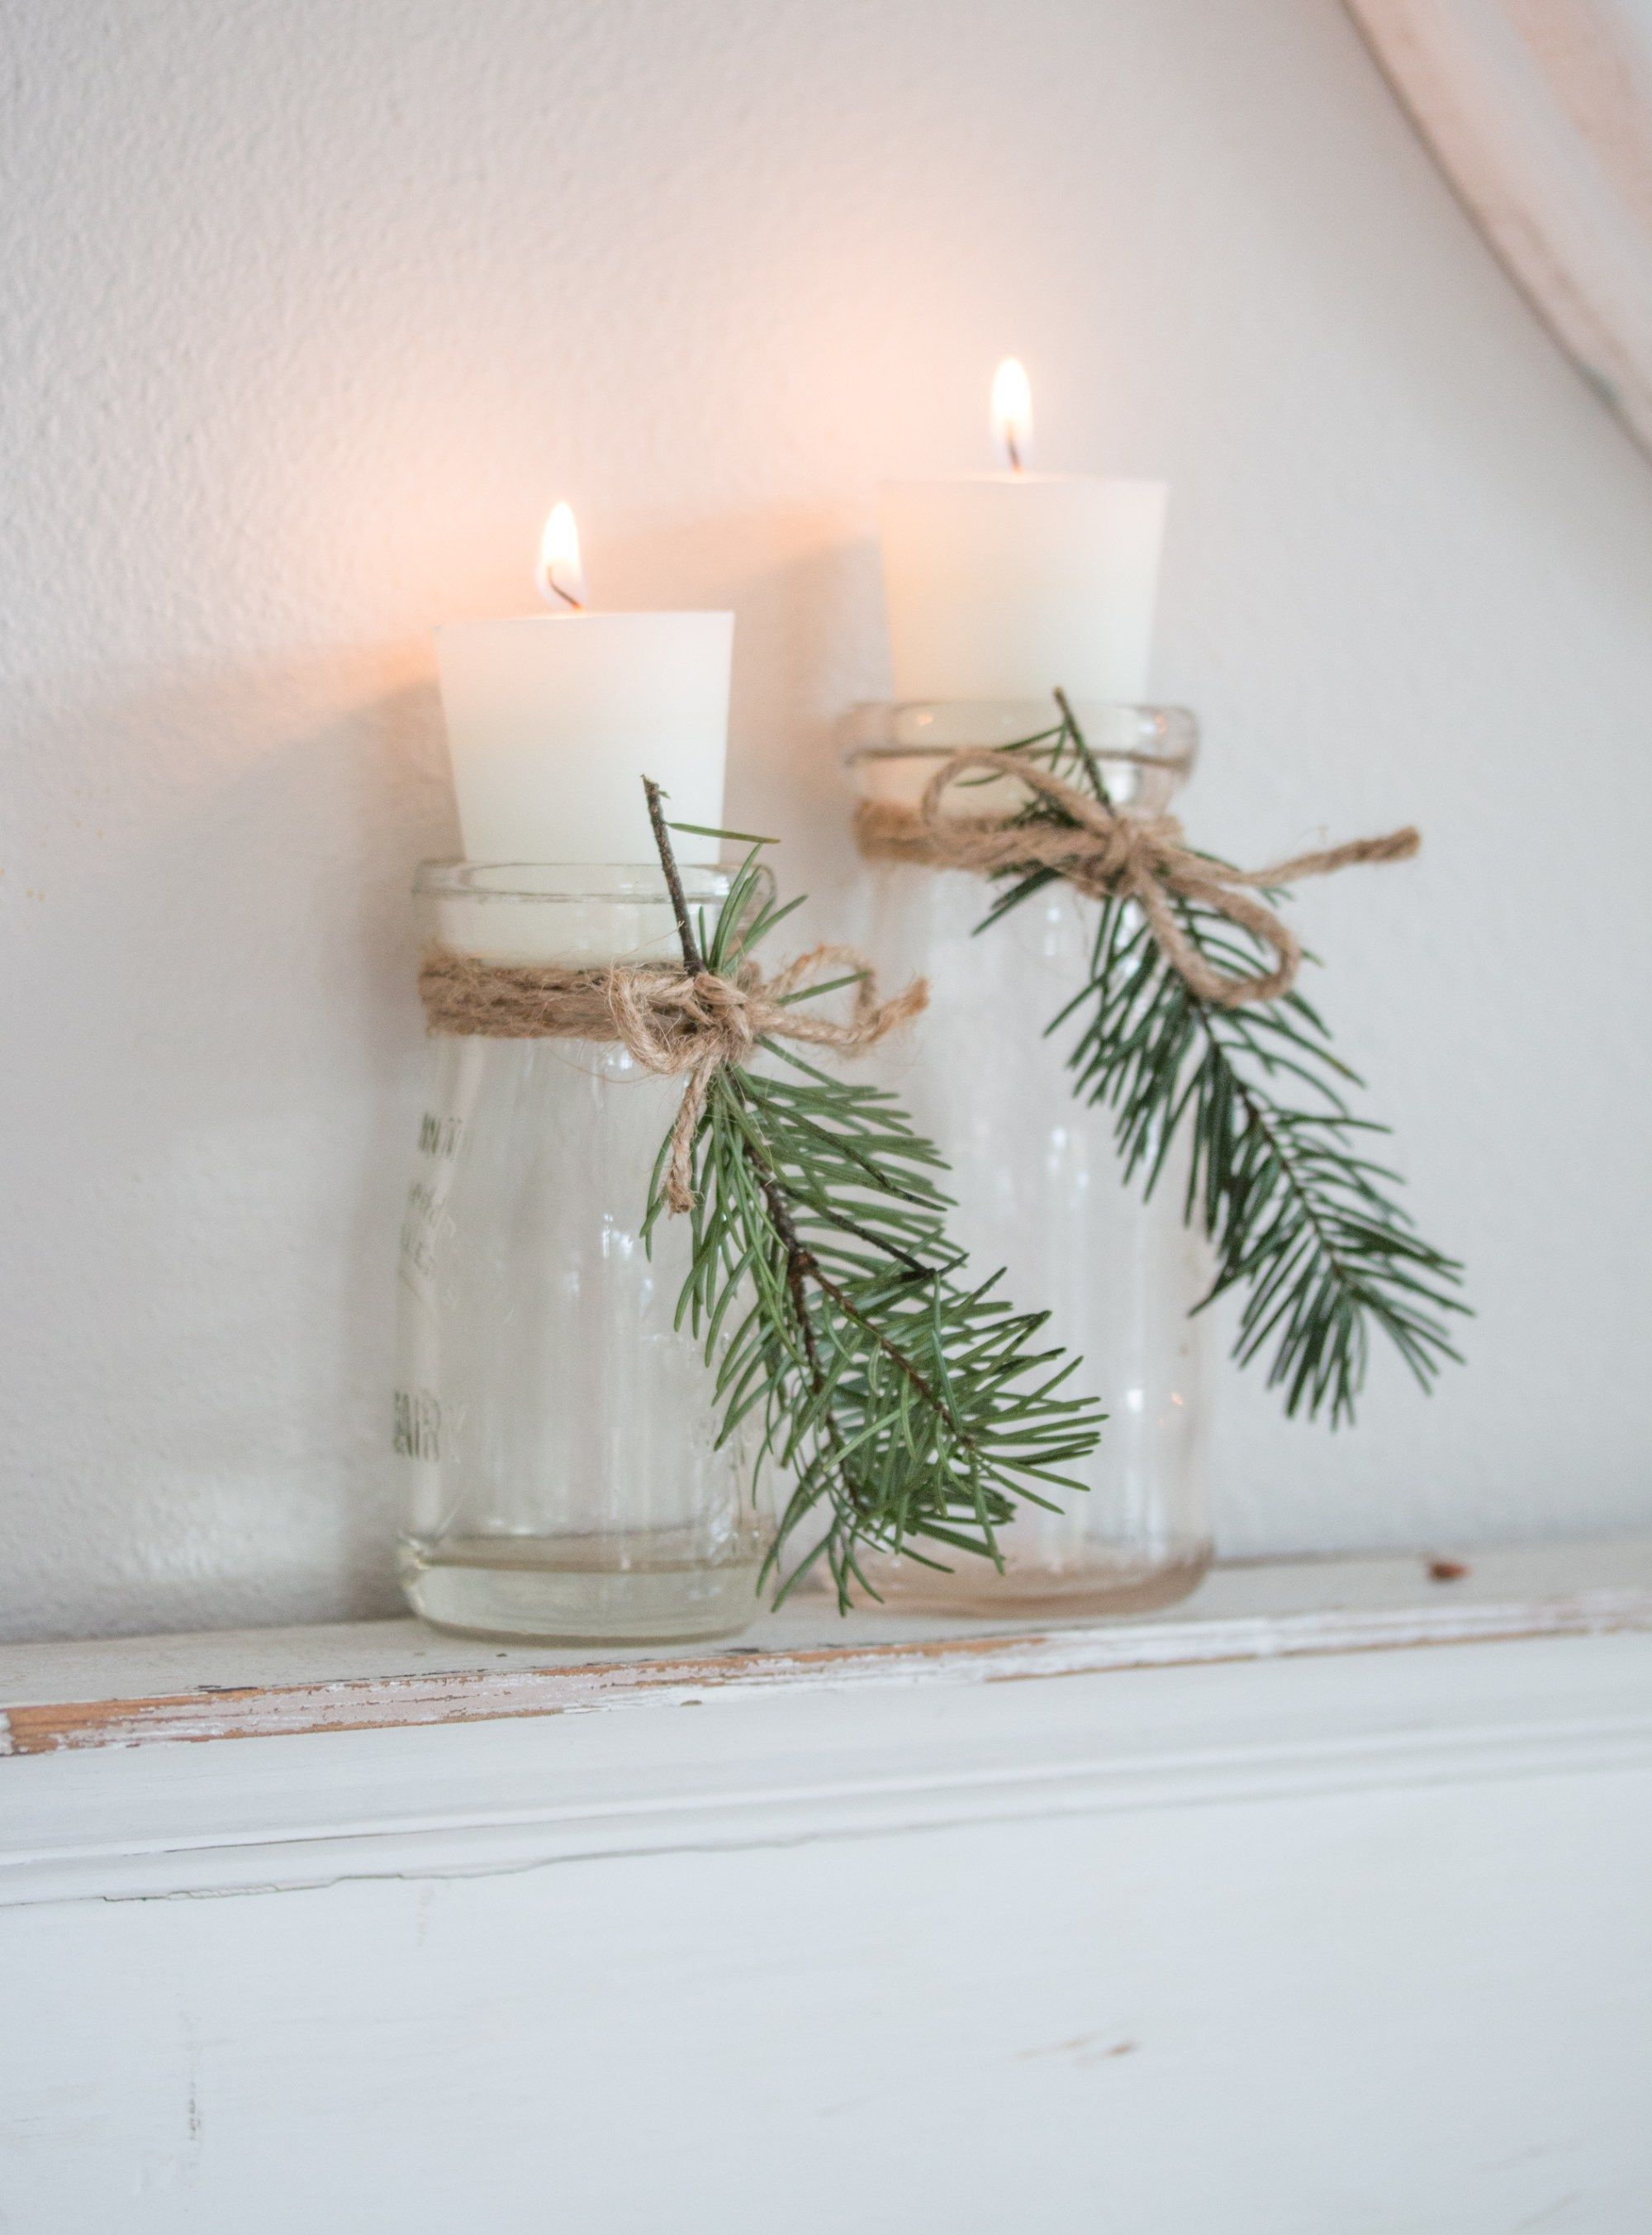 Get inspired by our selections of Christmas details for you home